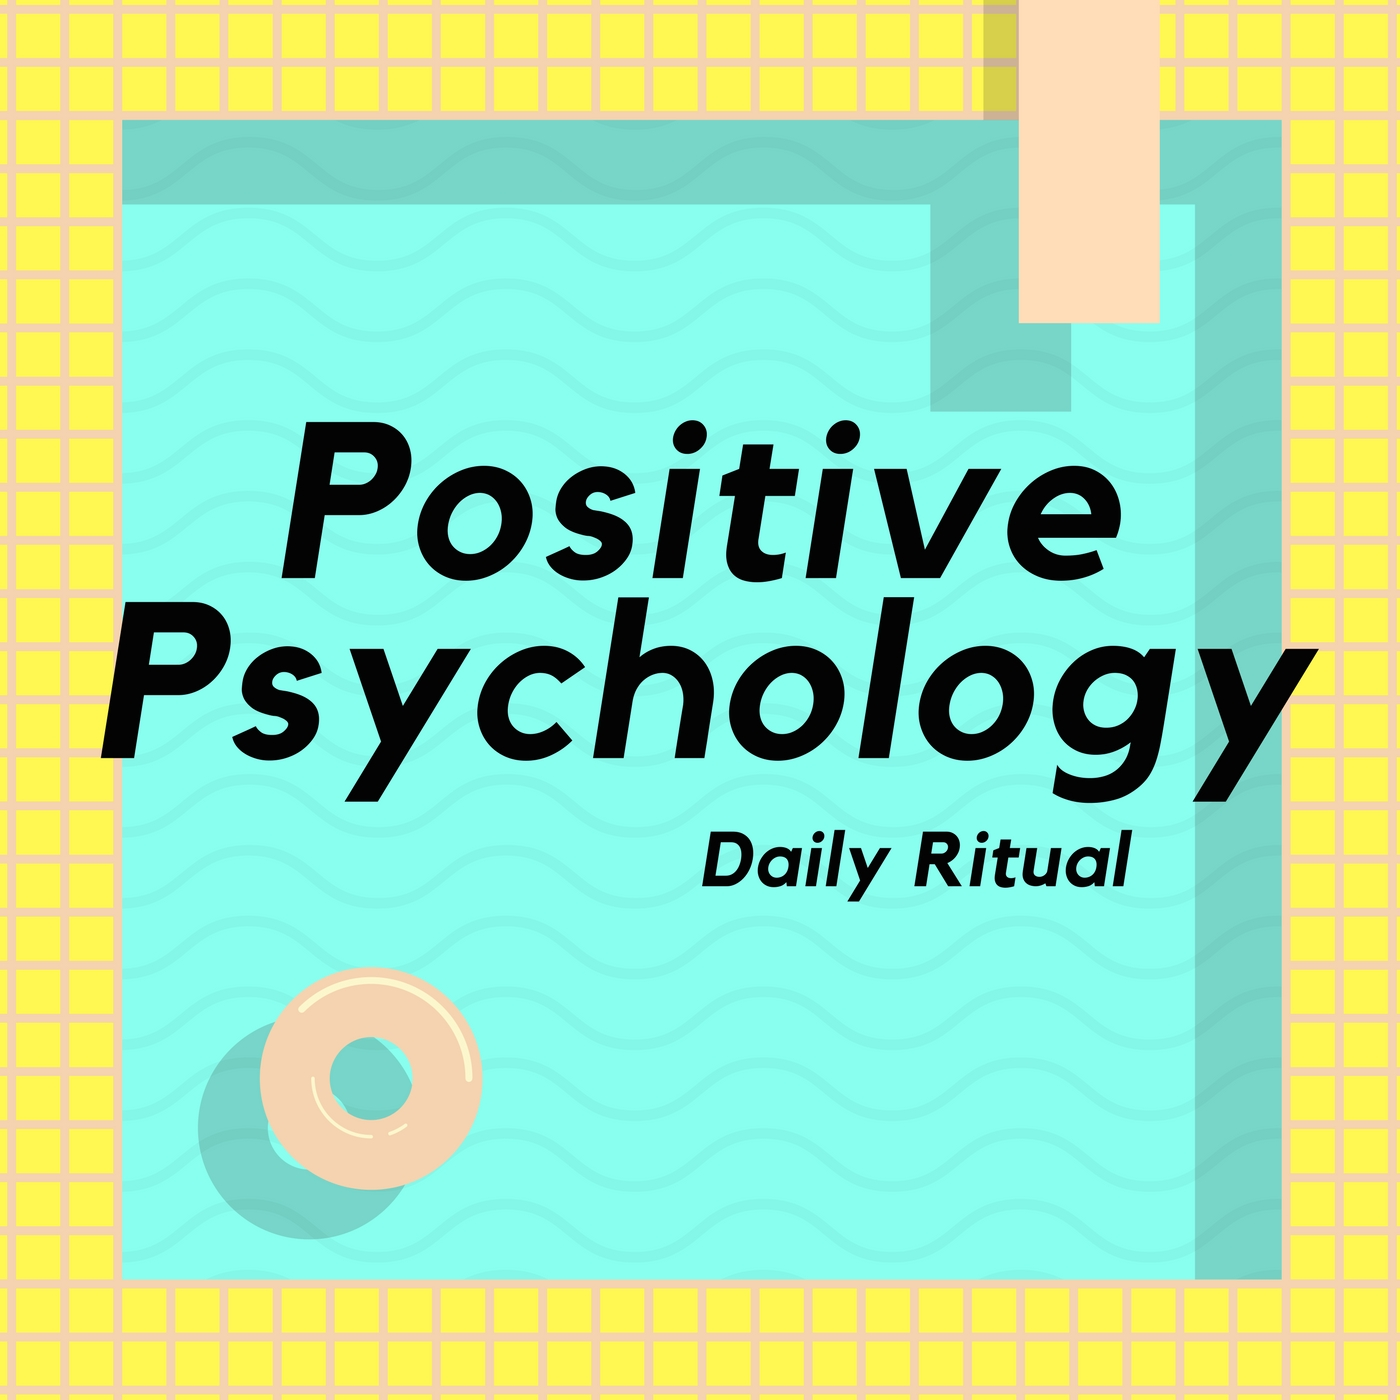 Positive Psychology Daily Ritual